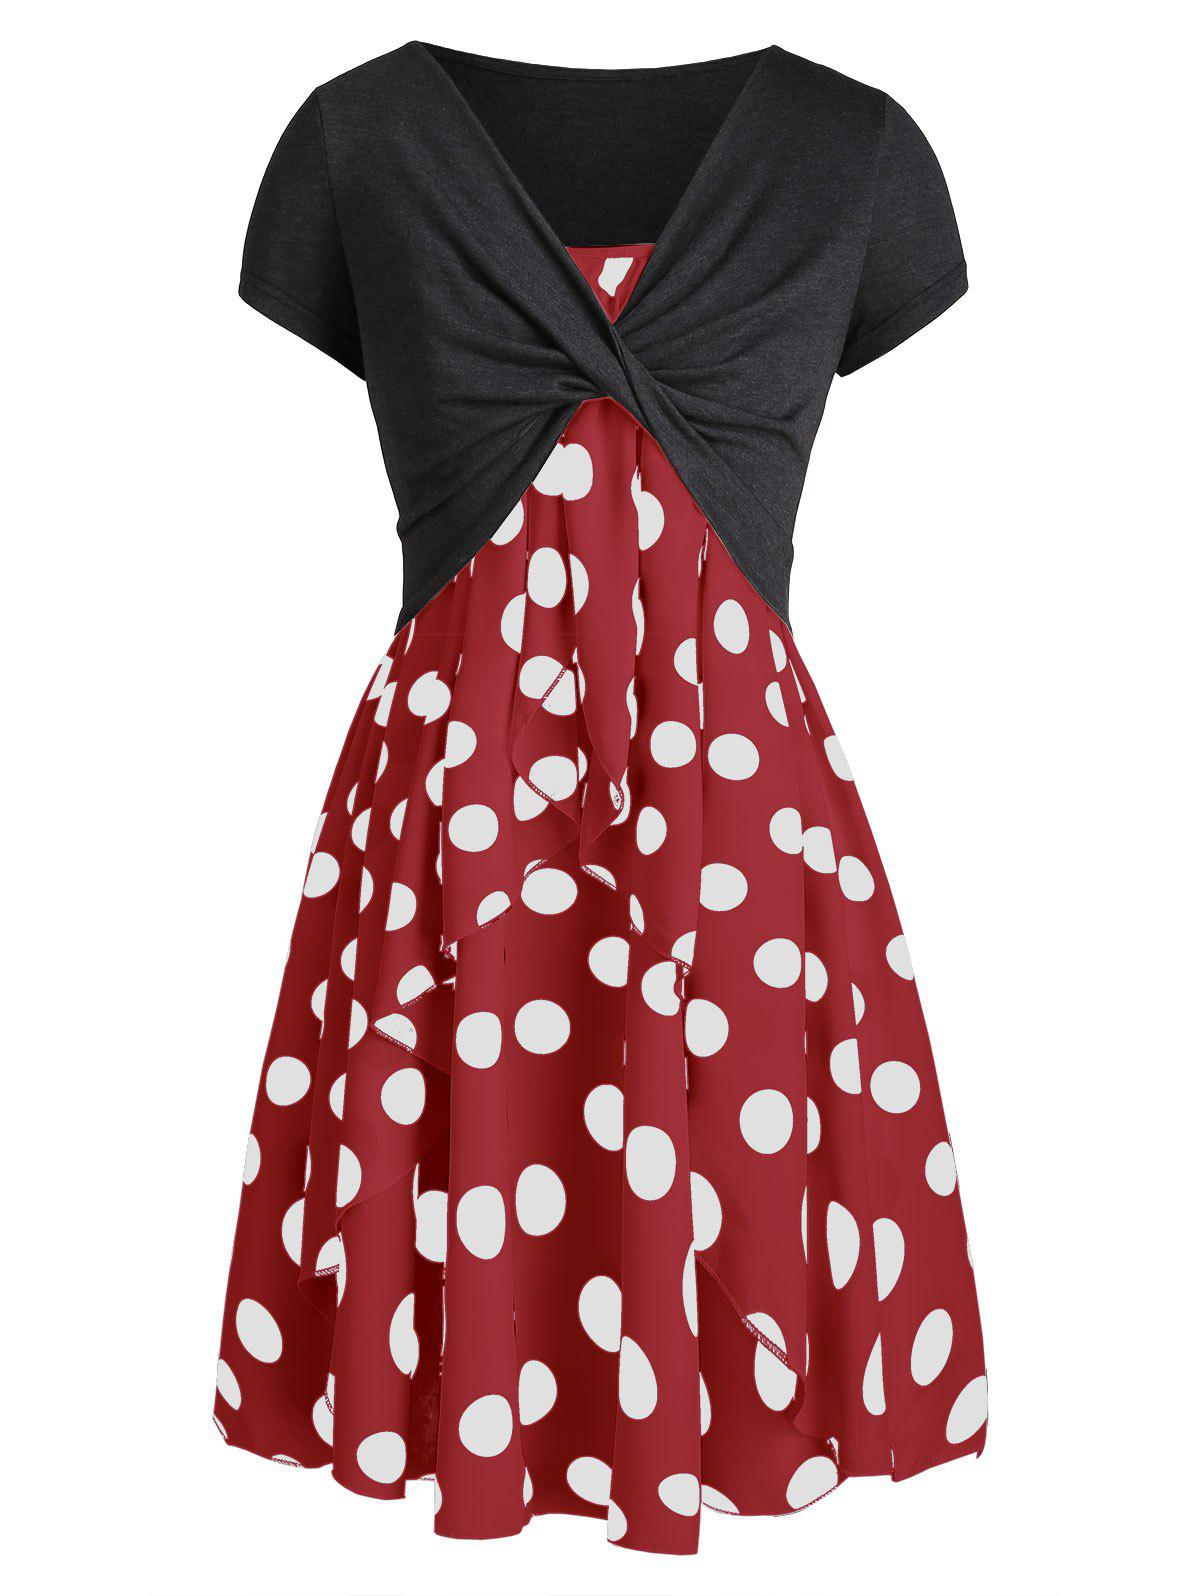 Polka Dot Cami Dress with Plunging T-shirt - LAVA RED L